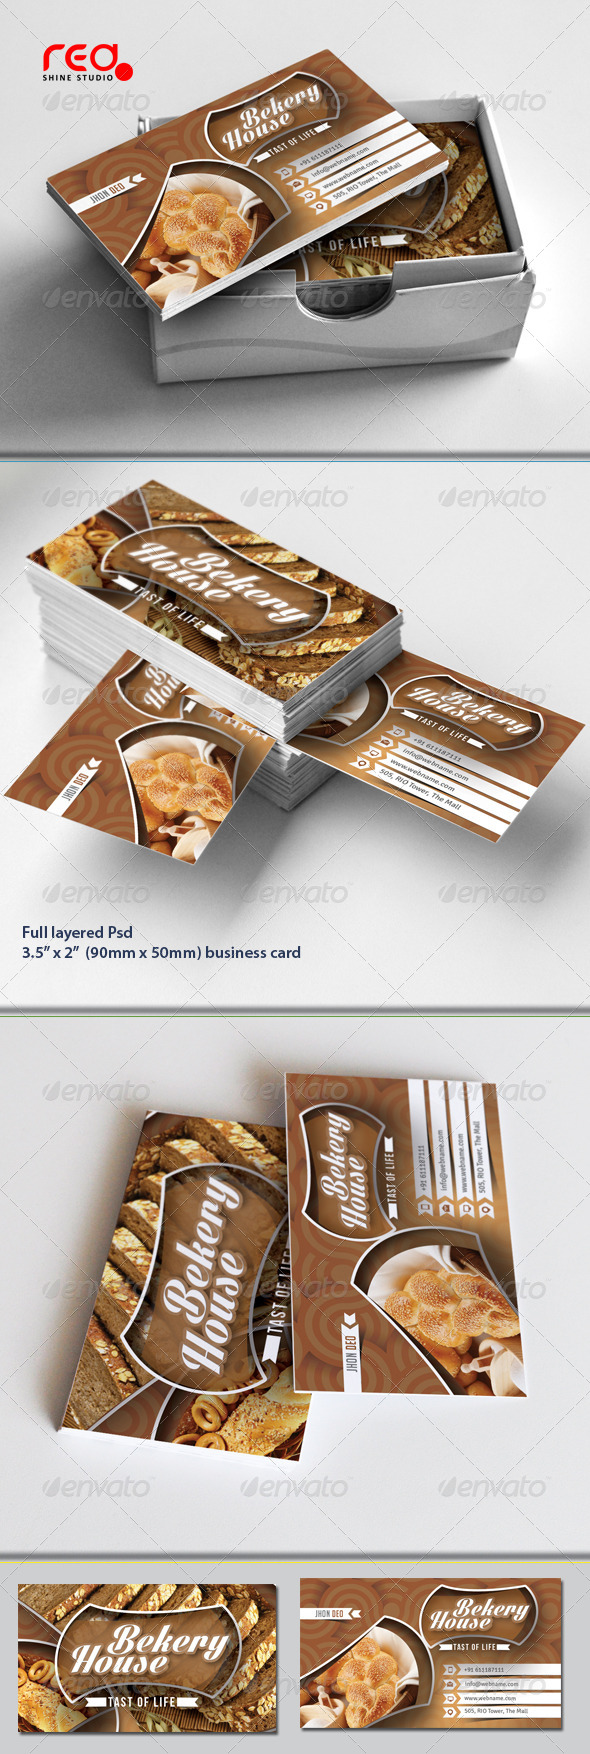 Bekery House Business Card Set - Industry Specific Business Cards